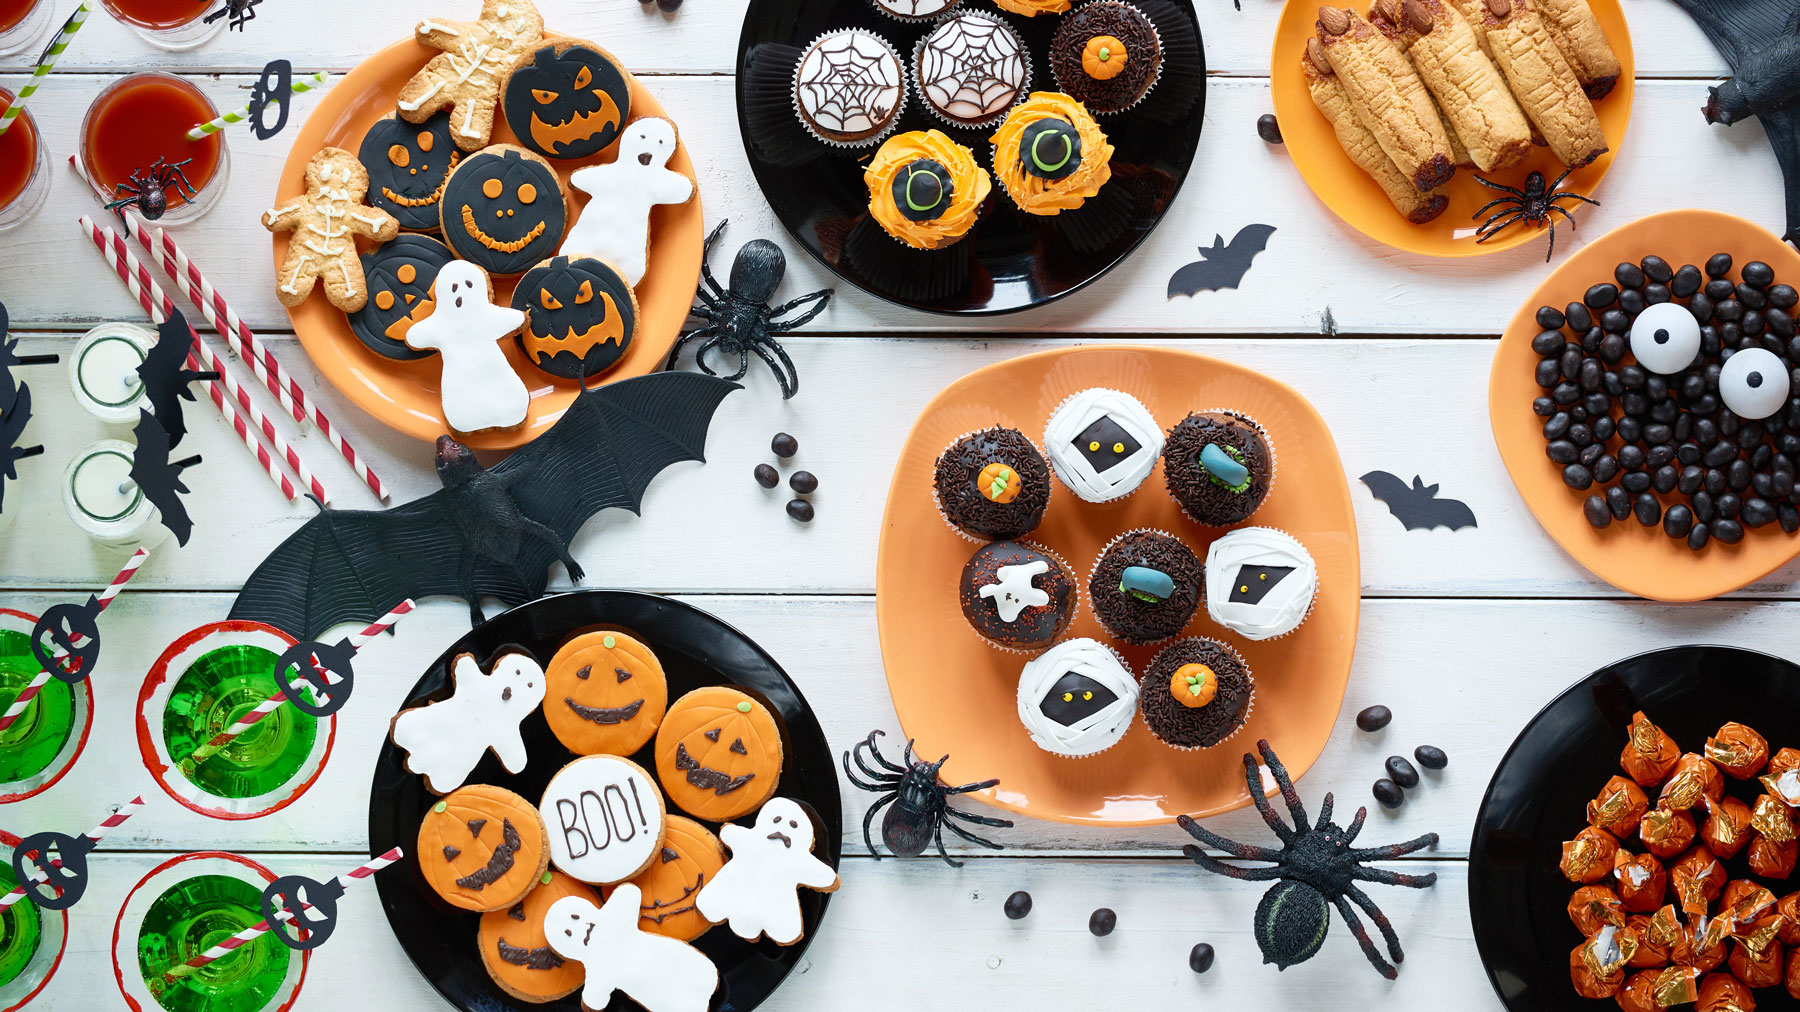 Halloween party checklist - Halloween party planning food